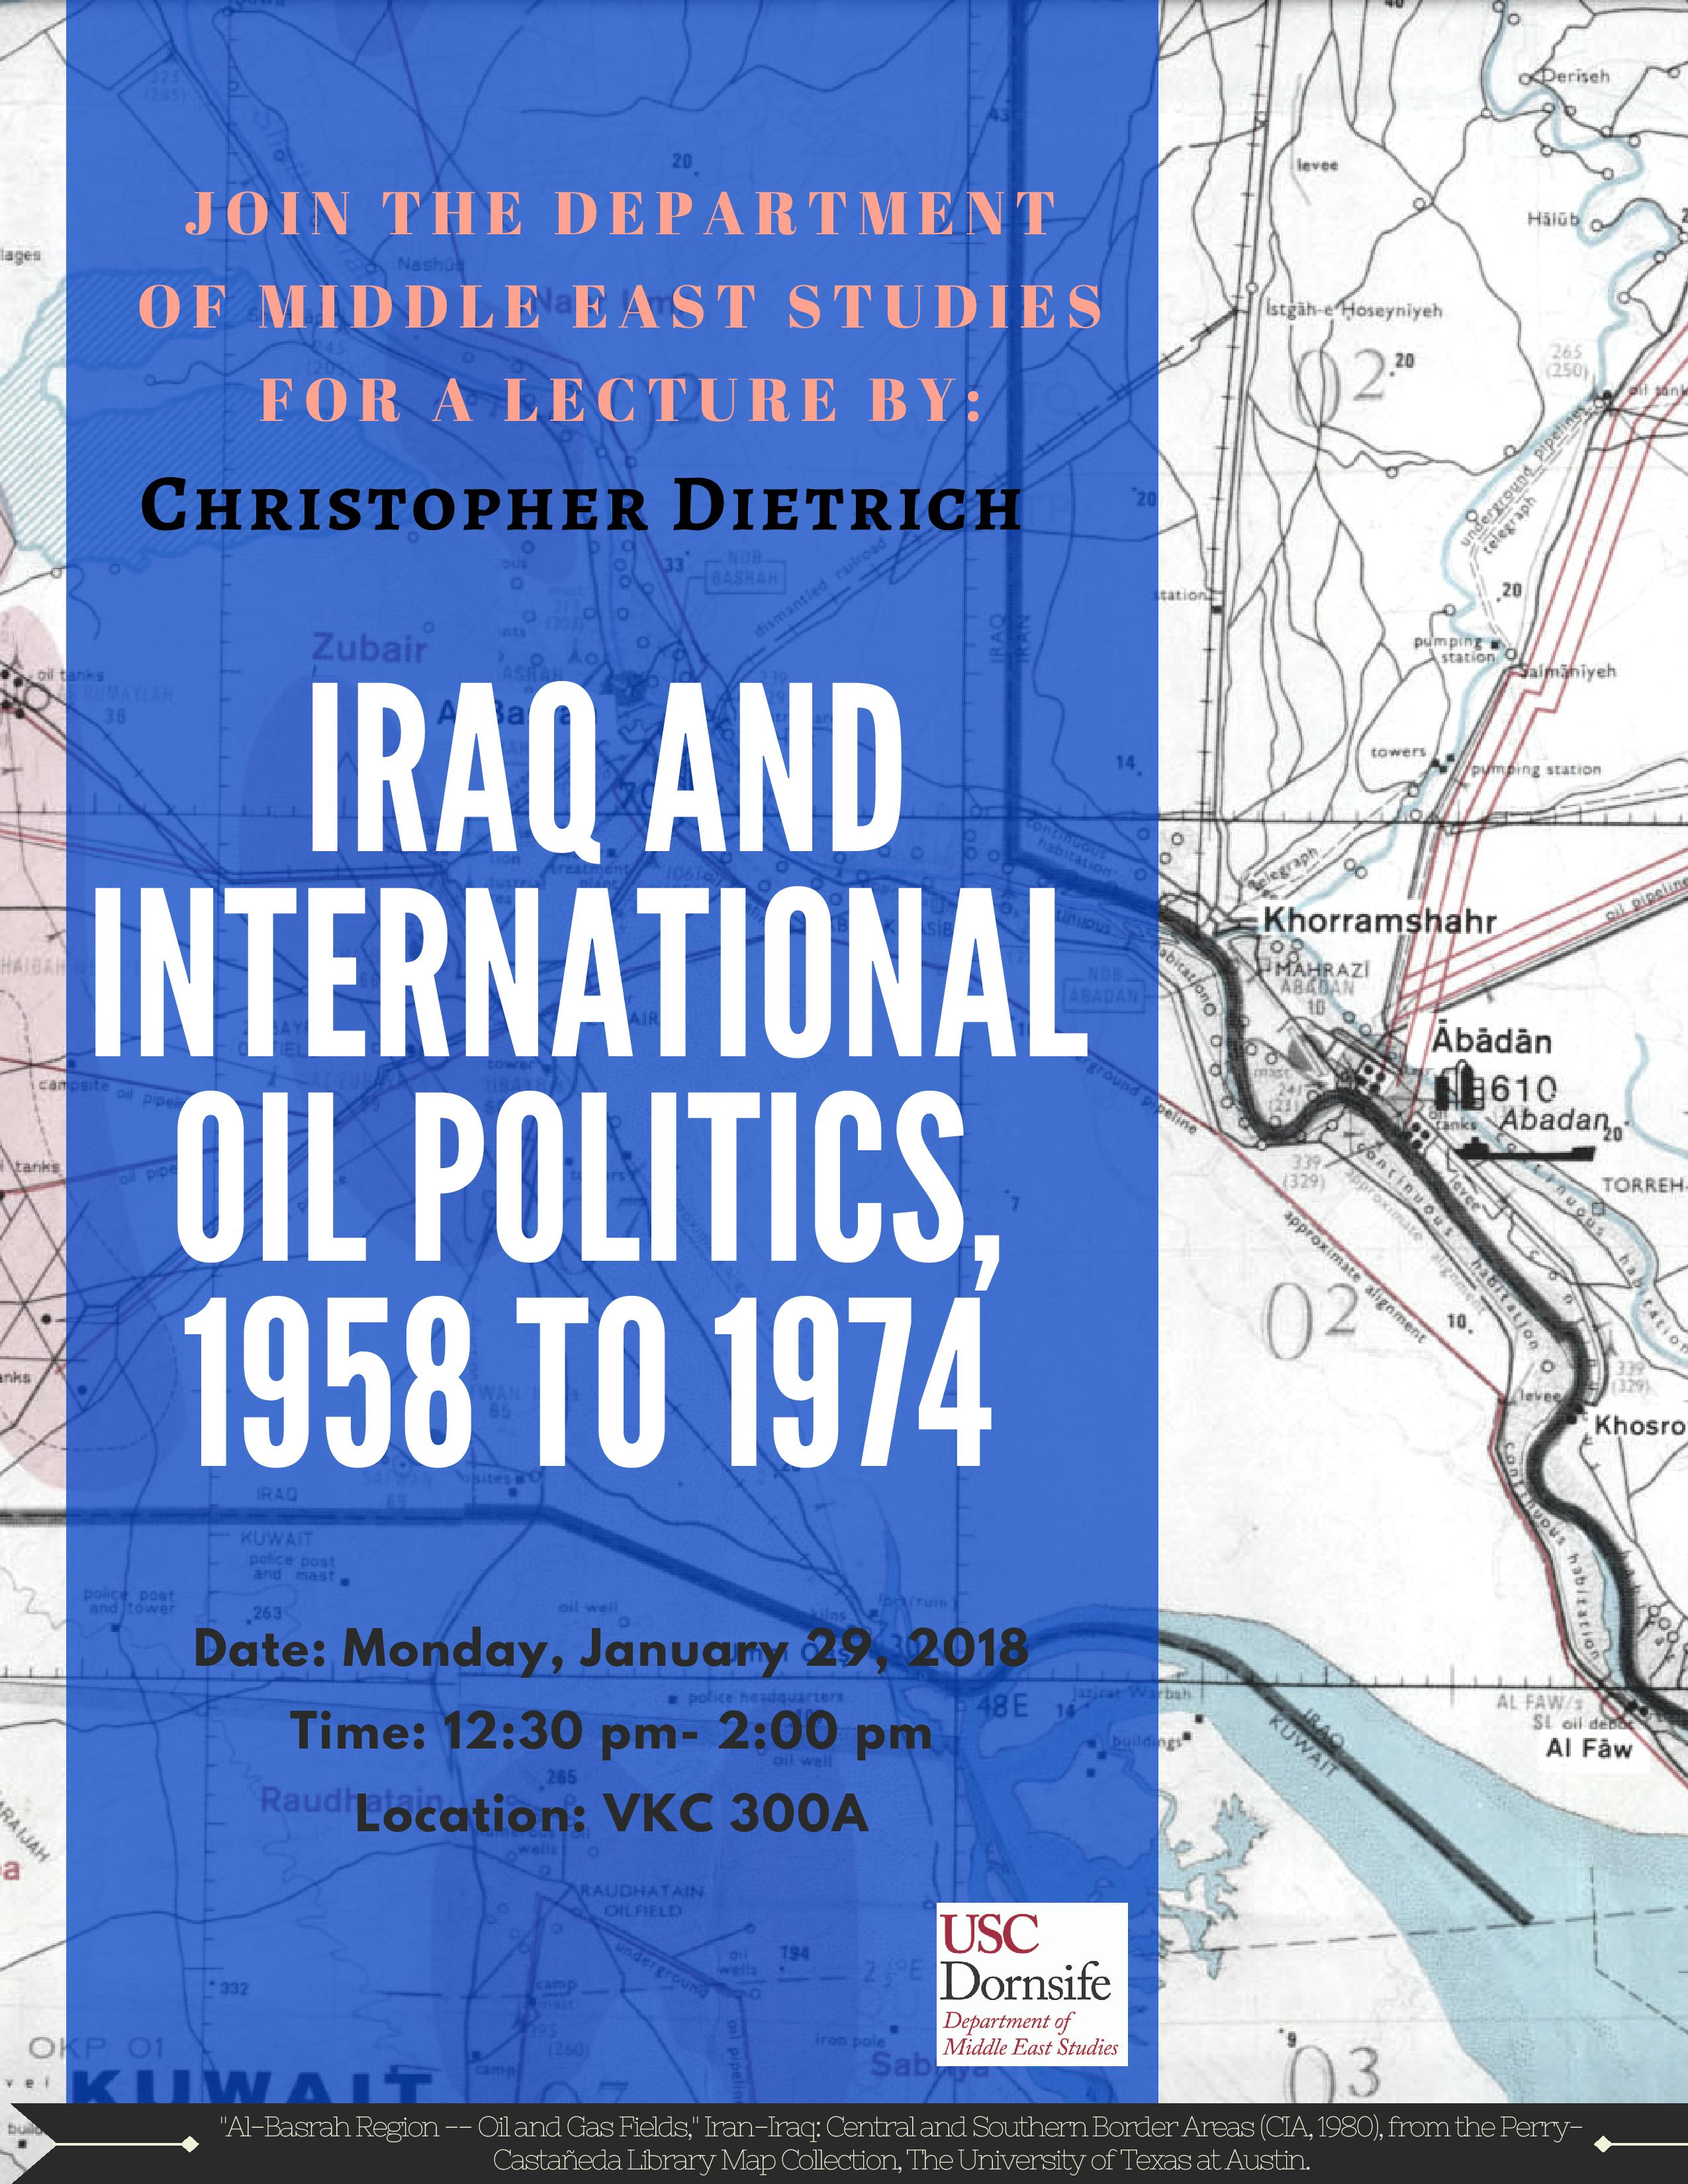 Lectures and Discussions > USC Department of Middle East Stus ... on jcu map, stanford university map, piedmont tech map, la southwest college map, west texas state map, university of ca map, harvard map, university of michigan map, unc map, duke map, ucla map, galveston texas city map, mayo clinic rochester map, hcc ybor campus map, seton hall map, los angeles cities map, michigan state university campus map, uc berkeley map, csu east bay map, university of oregon campus map,